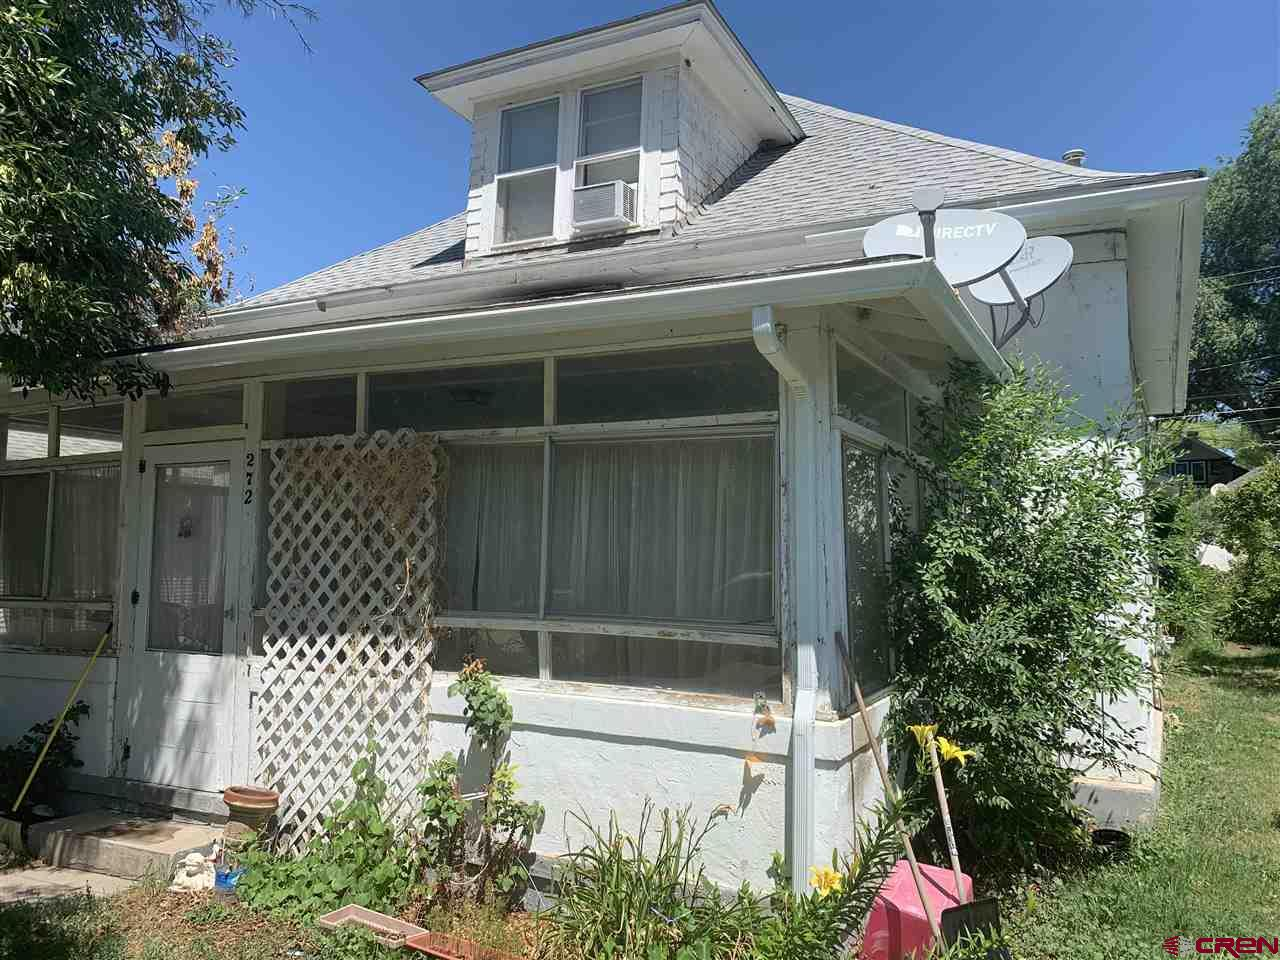 Excellent rental history, investment potential  with room for more cash flow due to the size of this four bedroom, two bathroom fixer upper!! Nice central Hotchkiss location within walking distance to schools, parks, fair grounds, shops, and more.  This is a gem in the making with some hard work and money...it will be that sweet spot you have been looking for to live or invest.